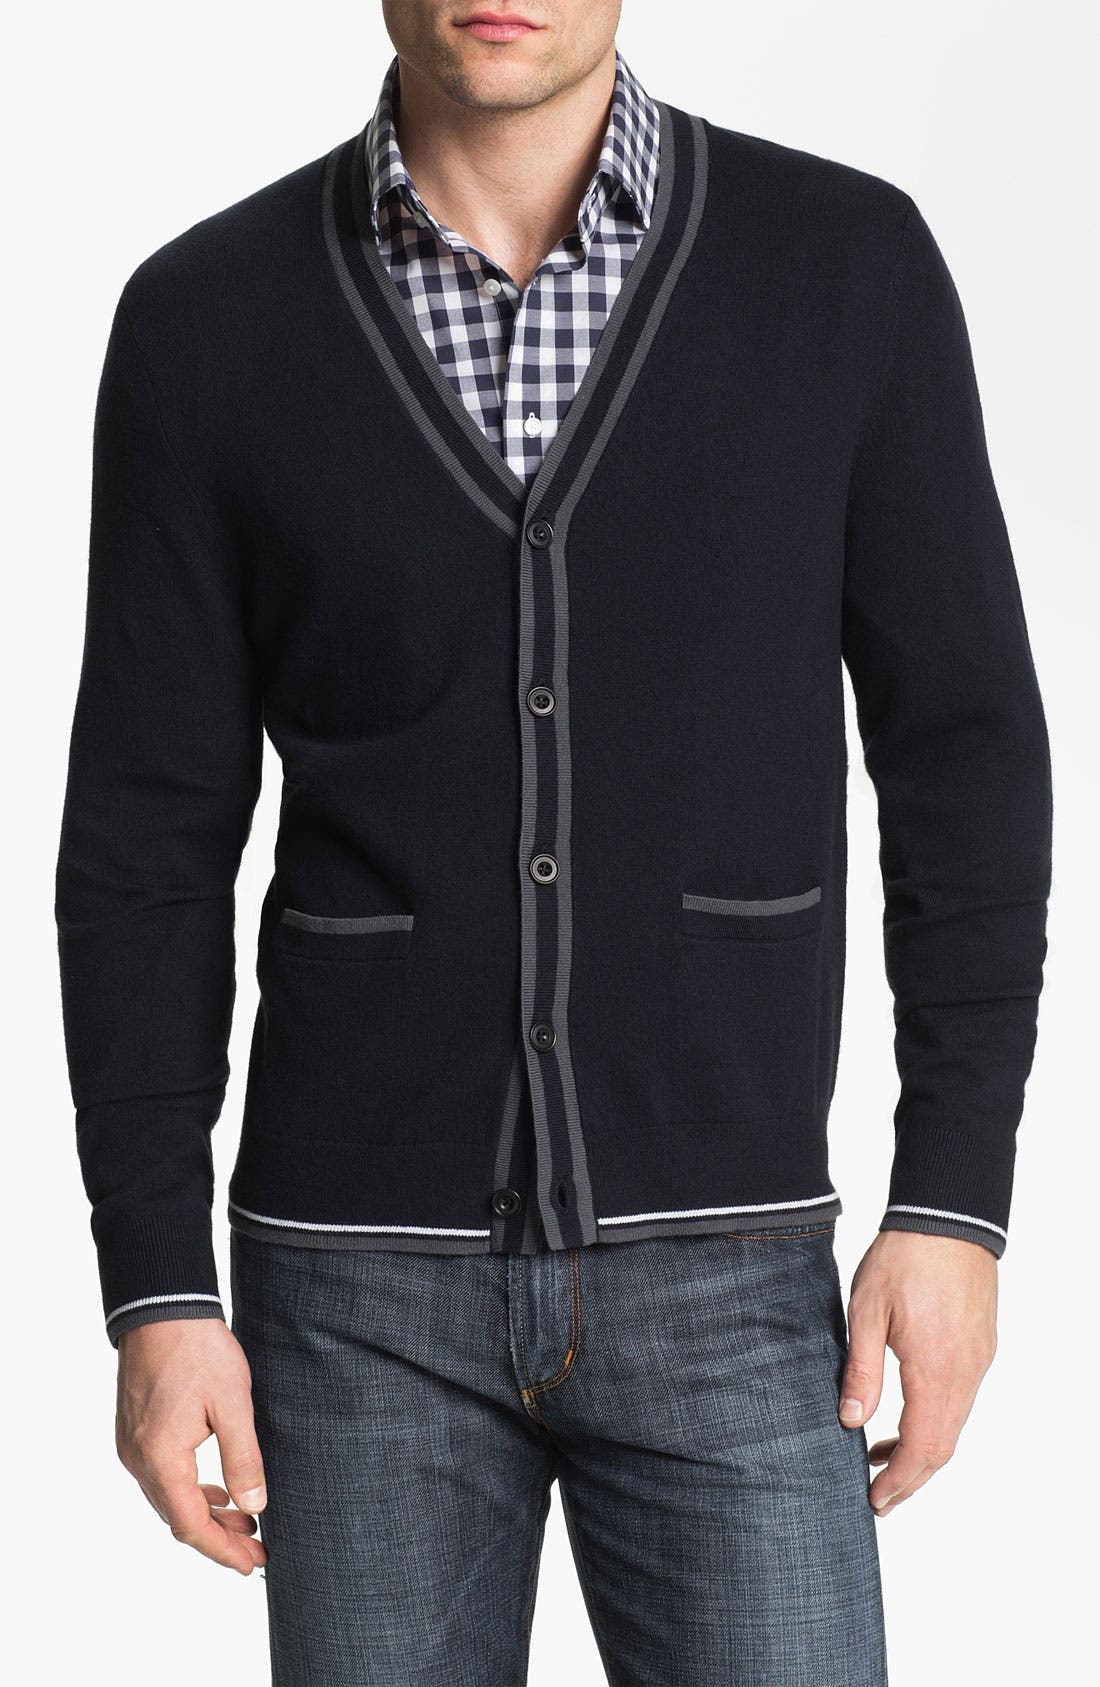 Alternate Image 1 Selected - Calibrate 'Demuth' Cashmere Blend Button Cardigan